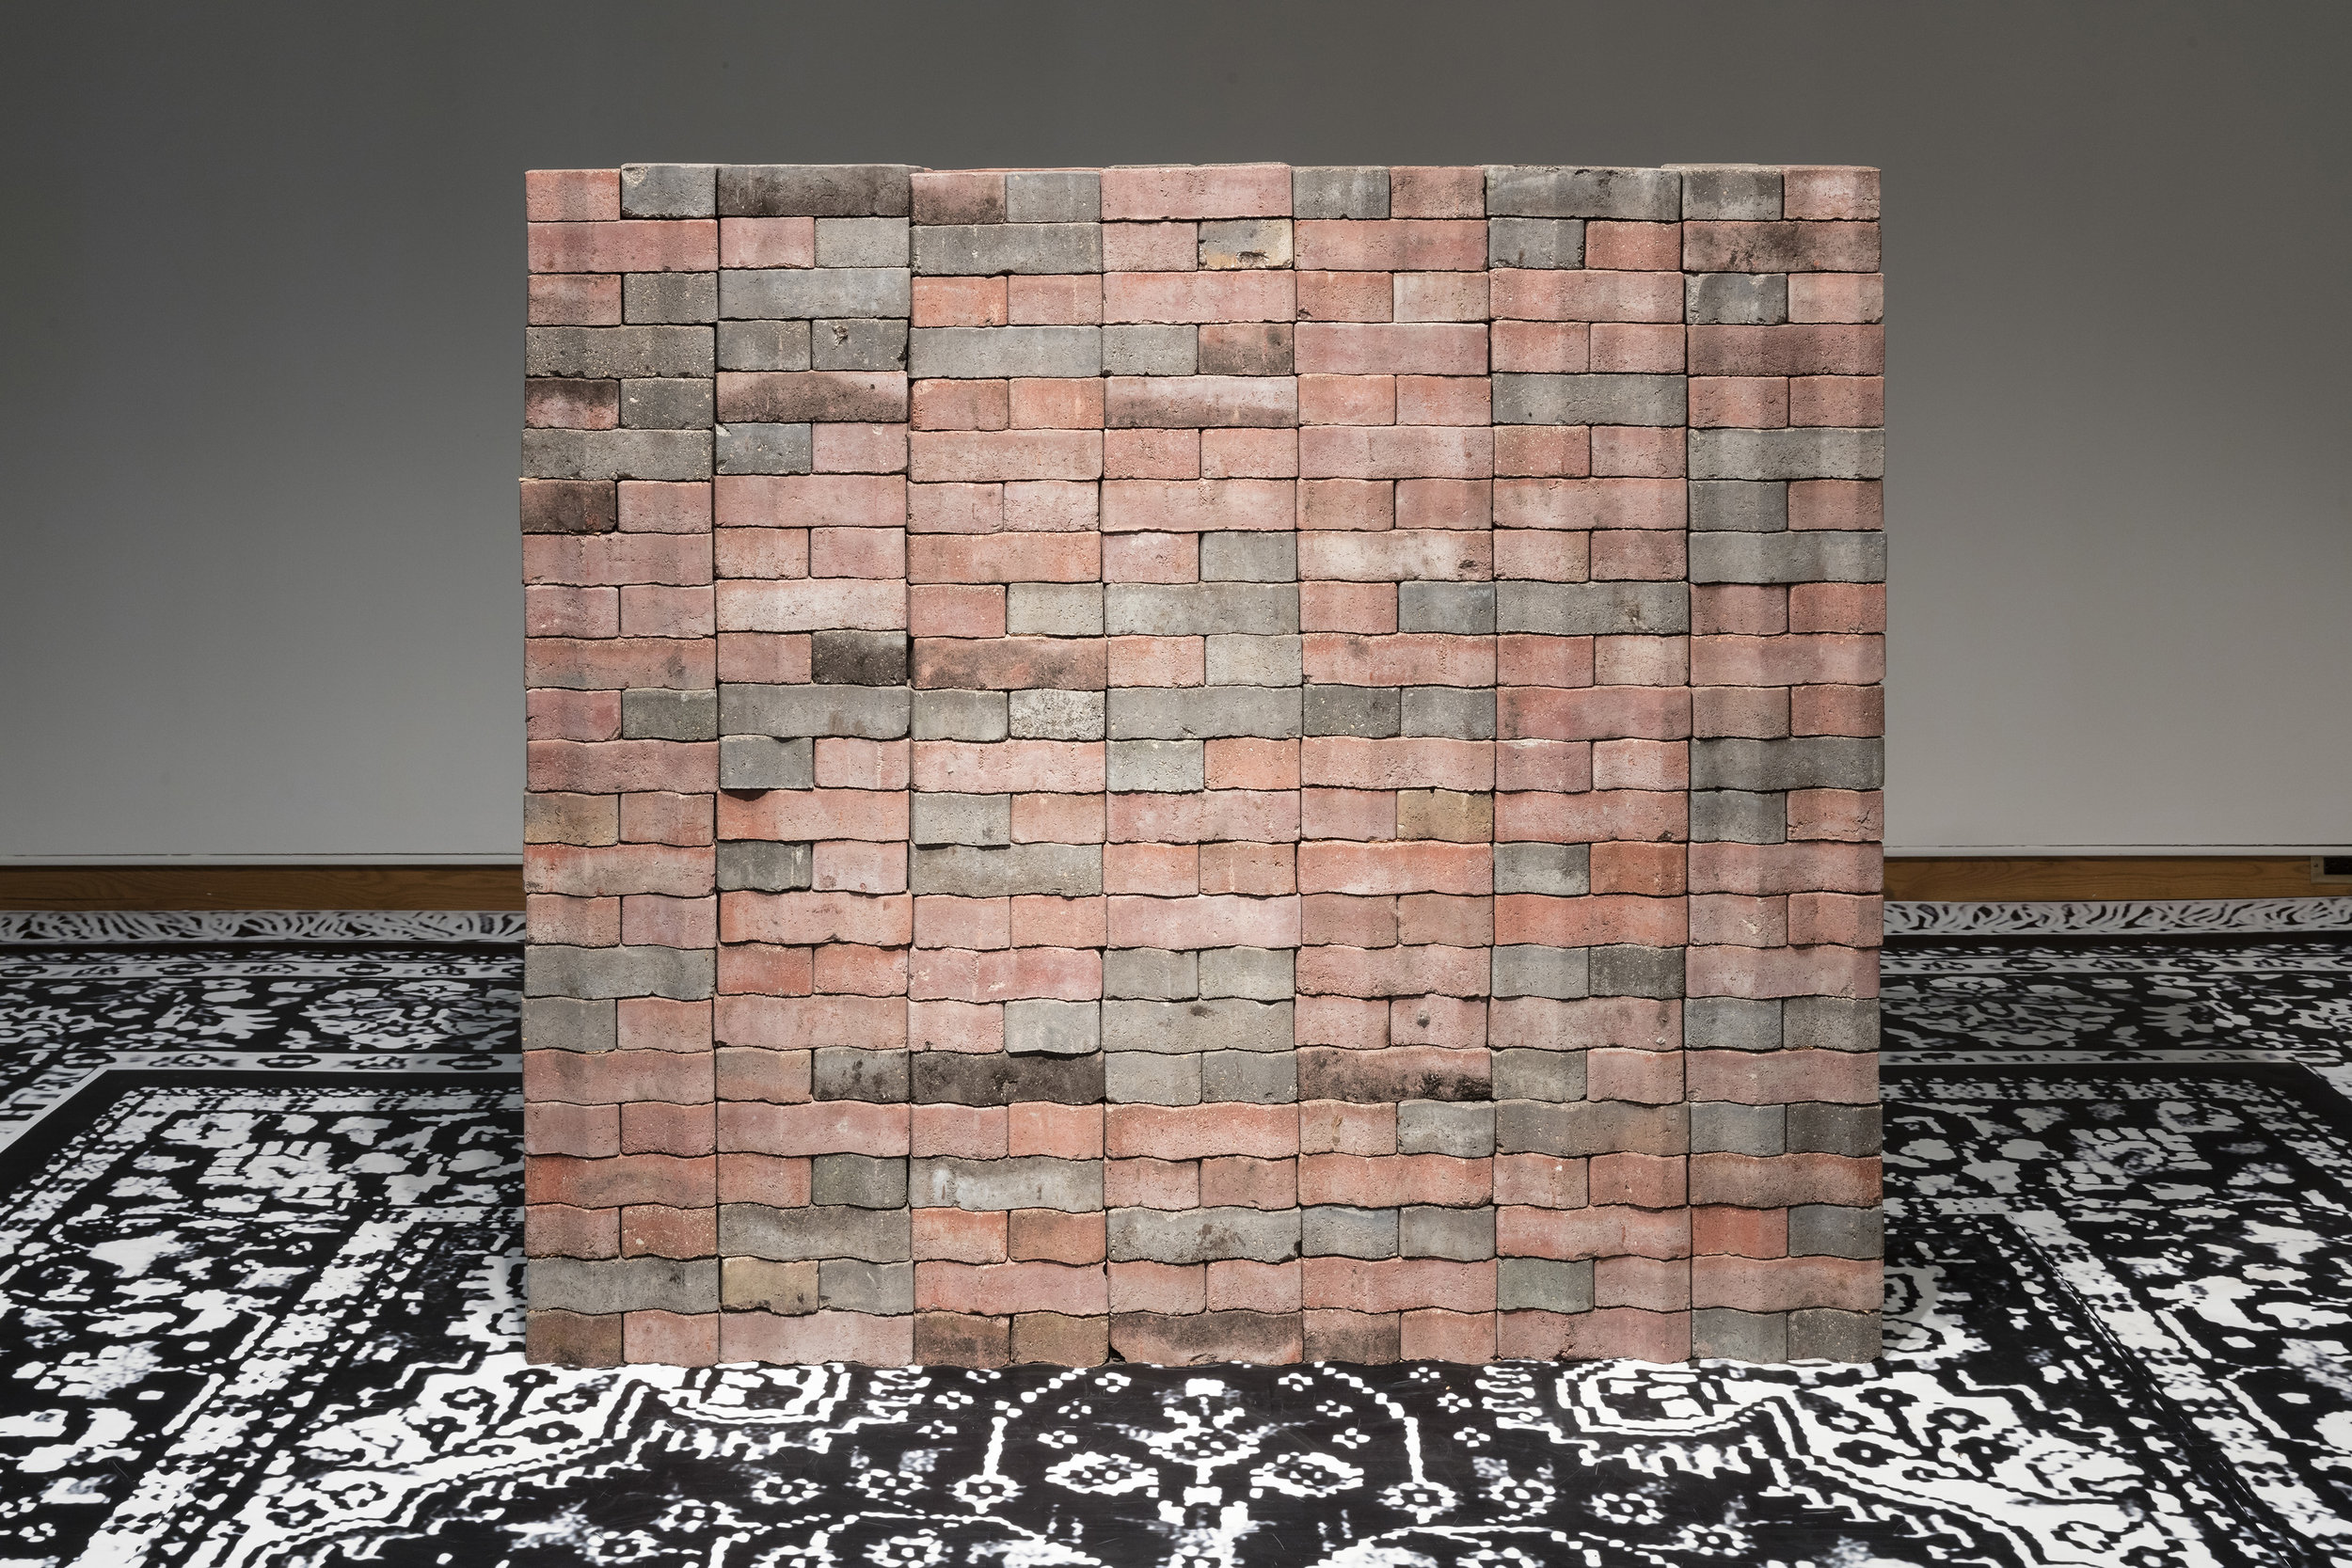 My Father's Raj, Mother India and what We lost as You gained (the albatross around your neck) , 2017, clay and shale bricks recovered from India Gardens restaurant before demolition, installation view at the Art Museum at the University of Toronto as part of the 2017 Sobey Art Award exhibition